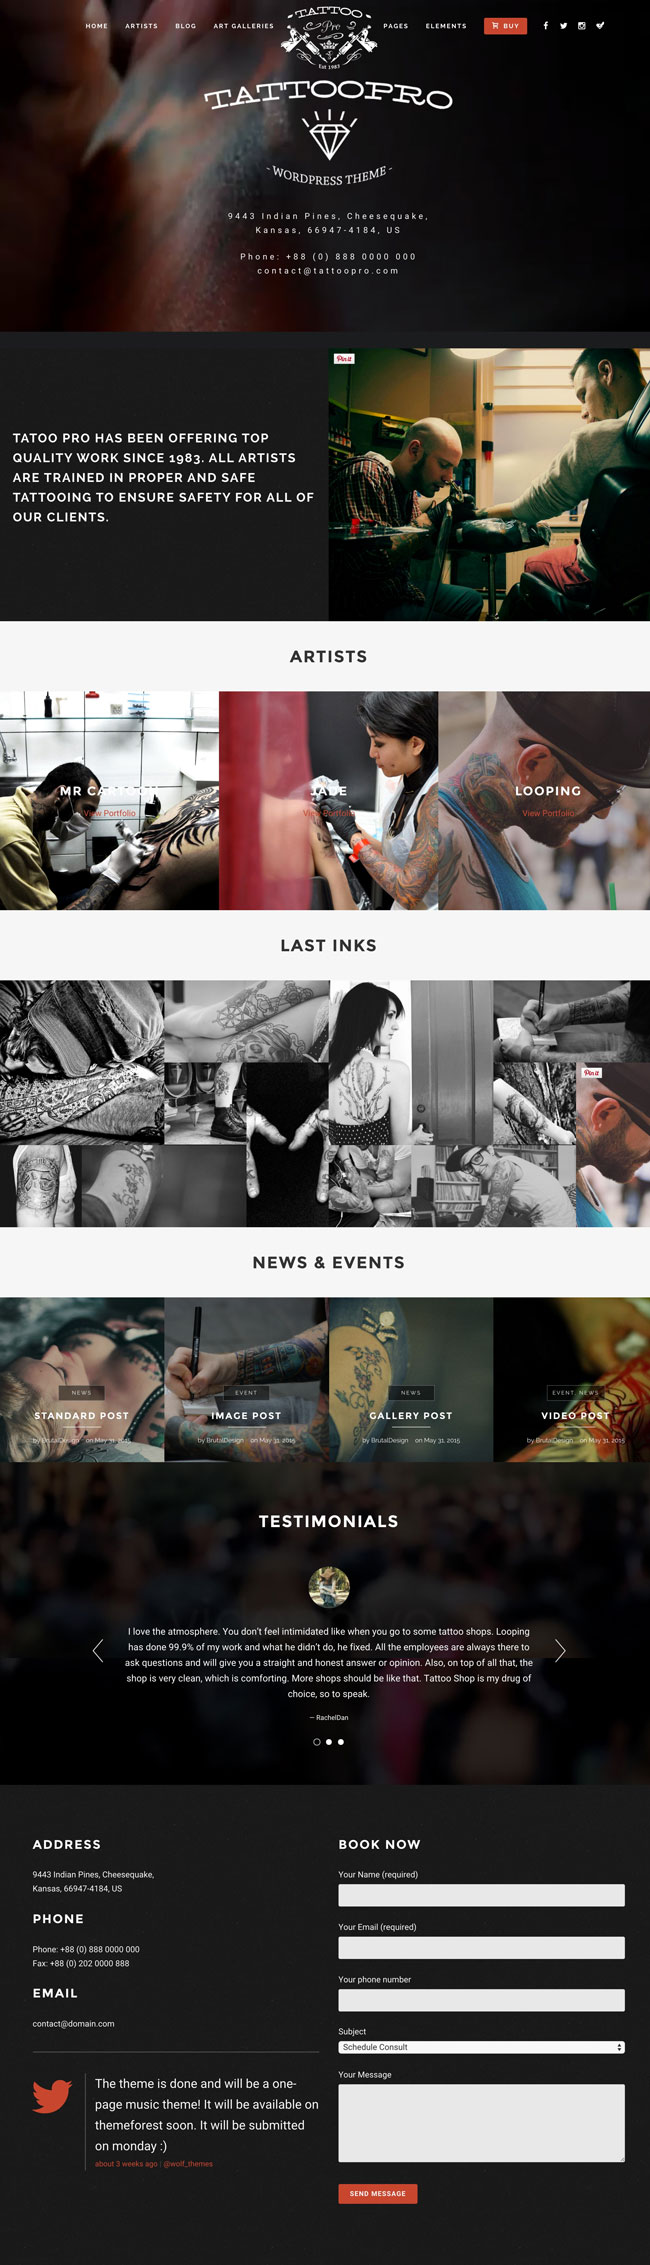 Tattoo-Pro---Your-Tattoo-Shop-WordPress-Theme